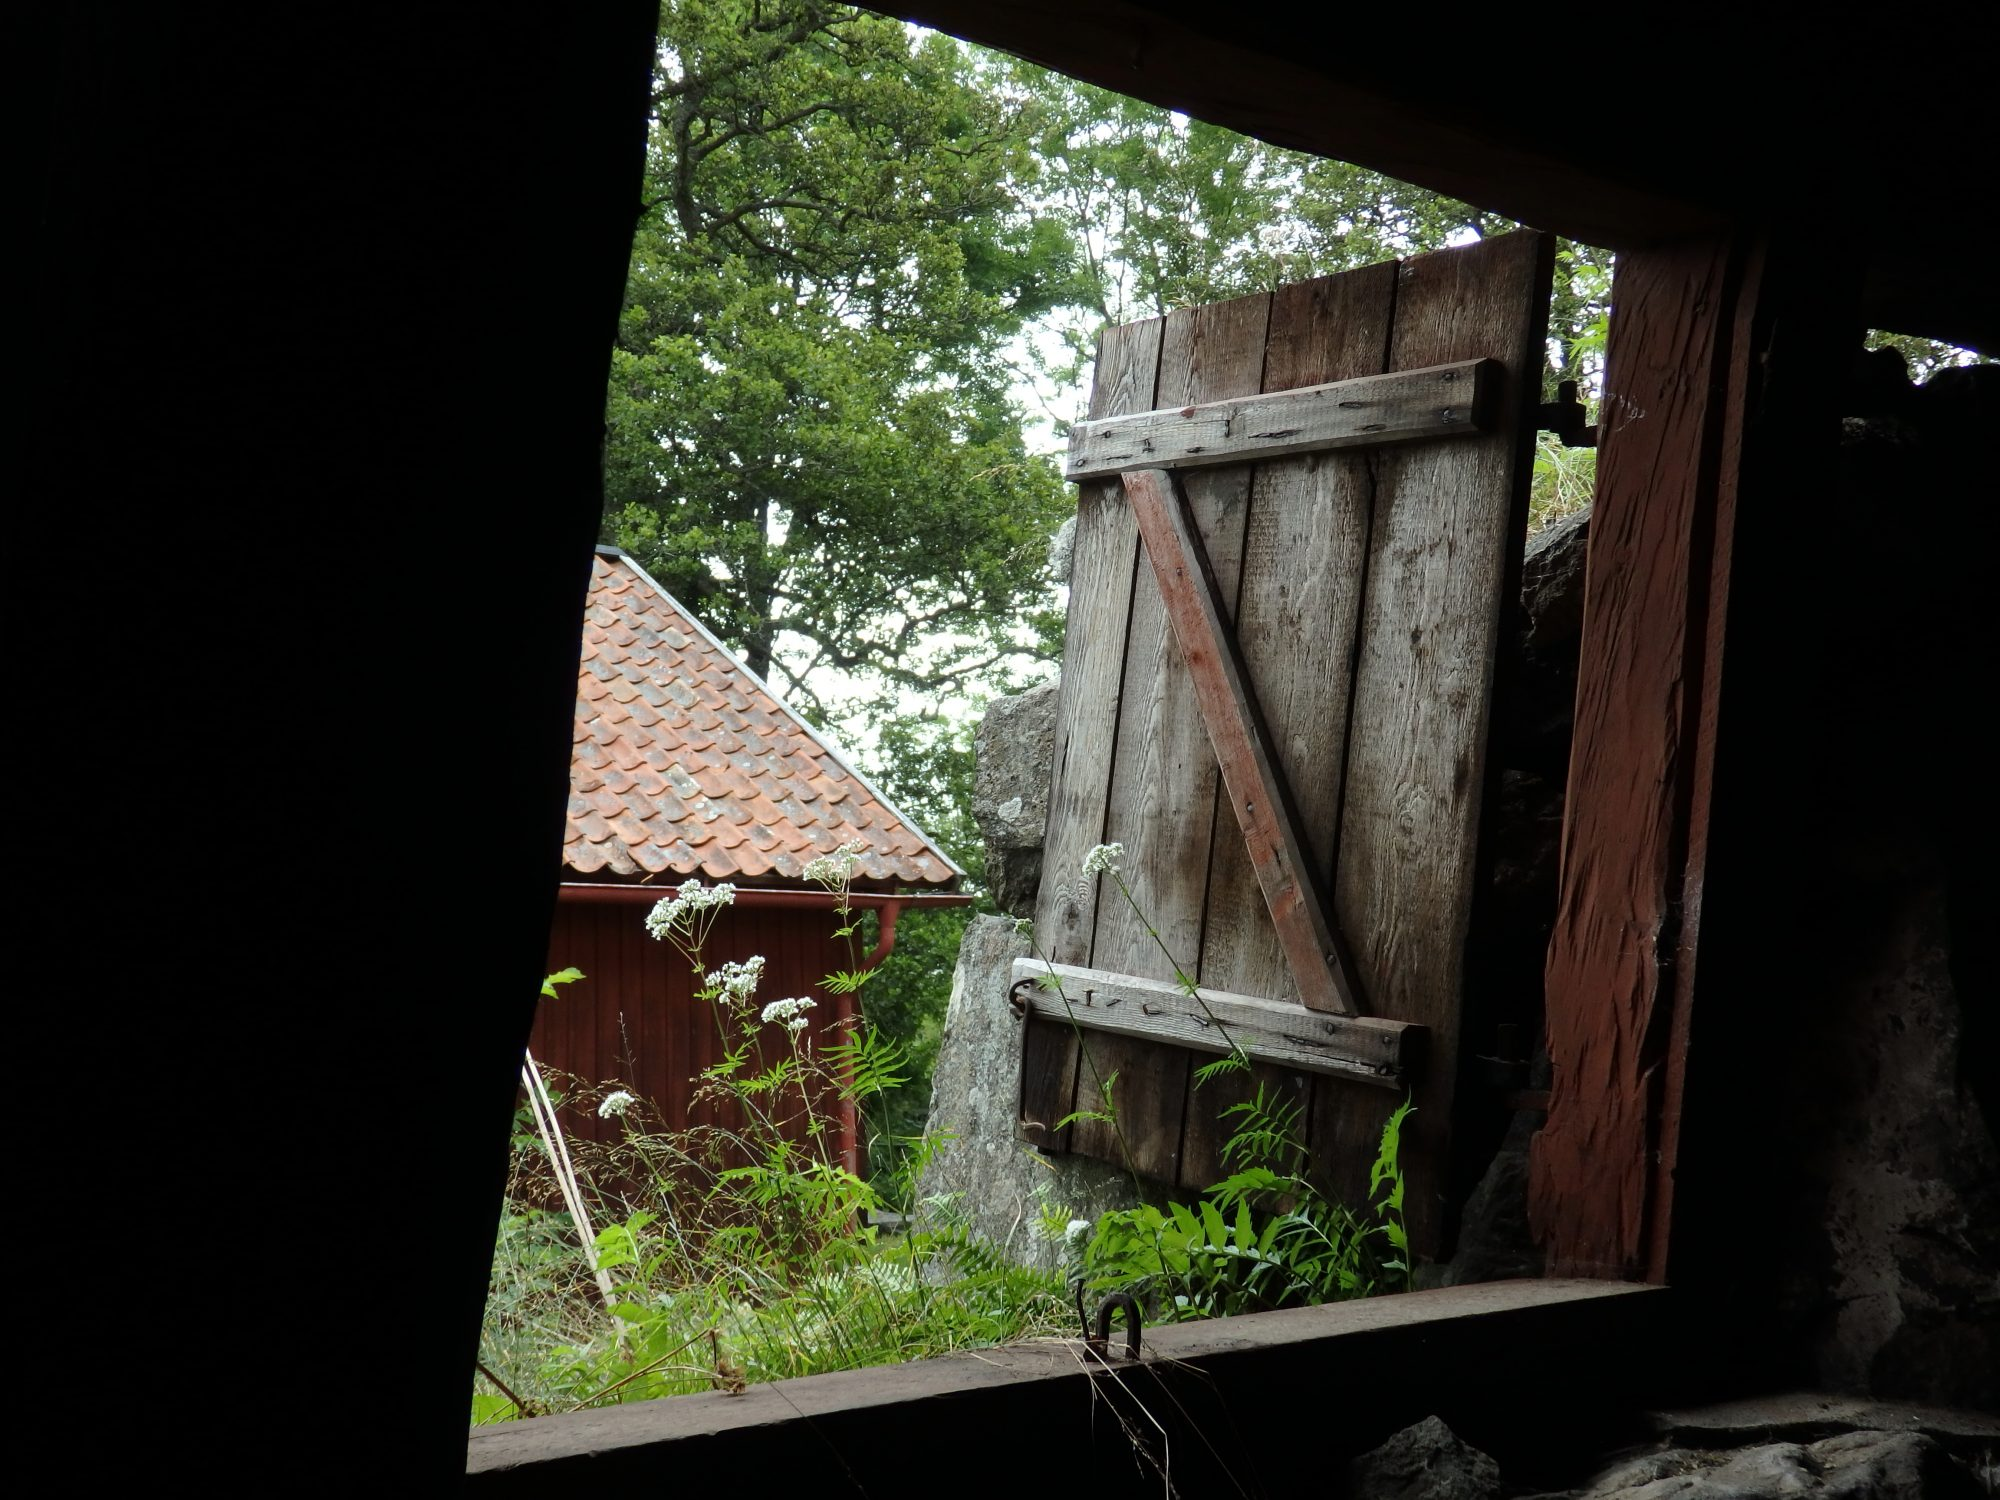 looking out of the forge building at Wira Bruk museum, Roslagen, Sweden